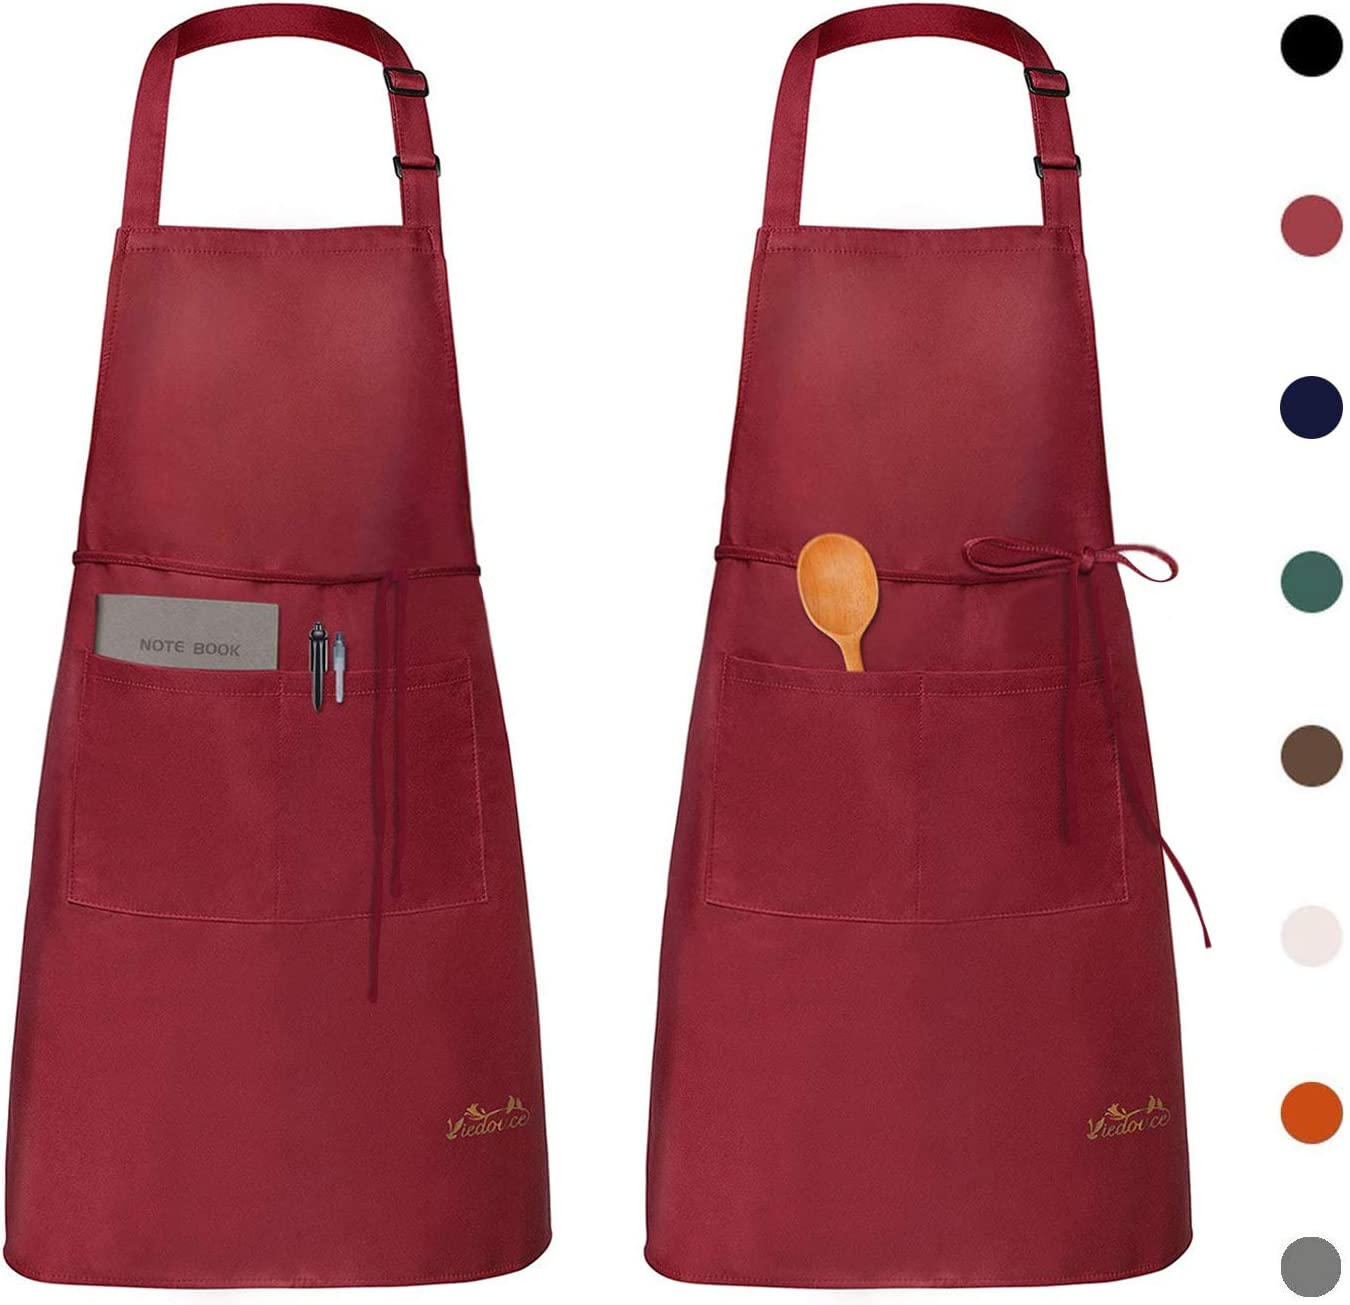 Viedouce Womens Mens Aprons with Pockets Durable Restaurant Aprons for Chefs Pocket Apron 2 Pack, Red